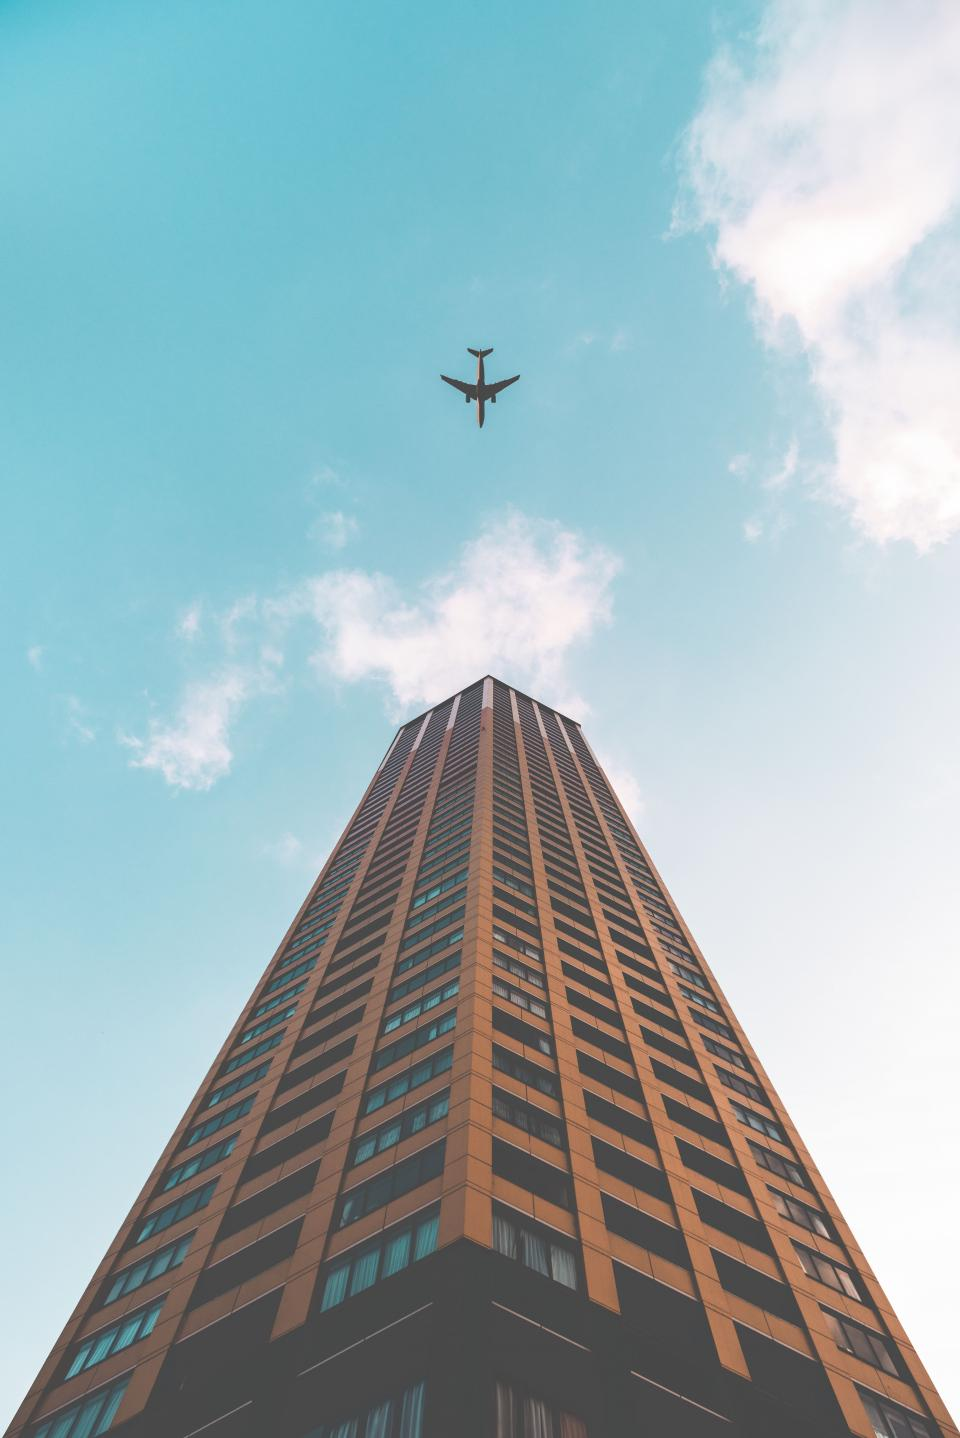 architecture building infrastructure sky skyscraper tower blue sky airplane airline travel trip flight